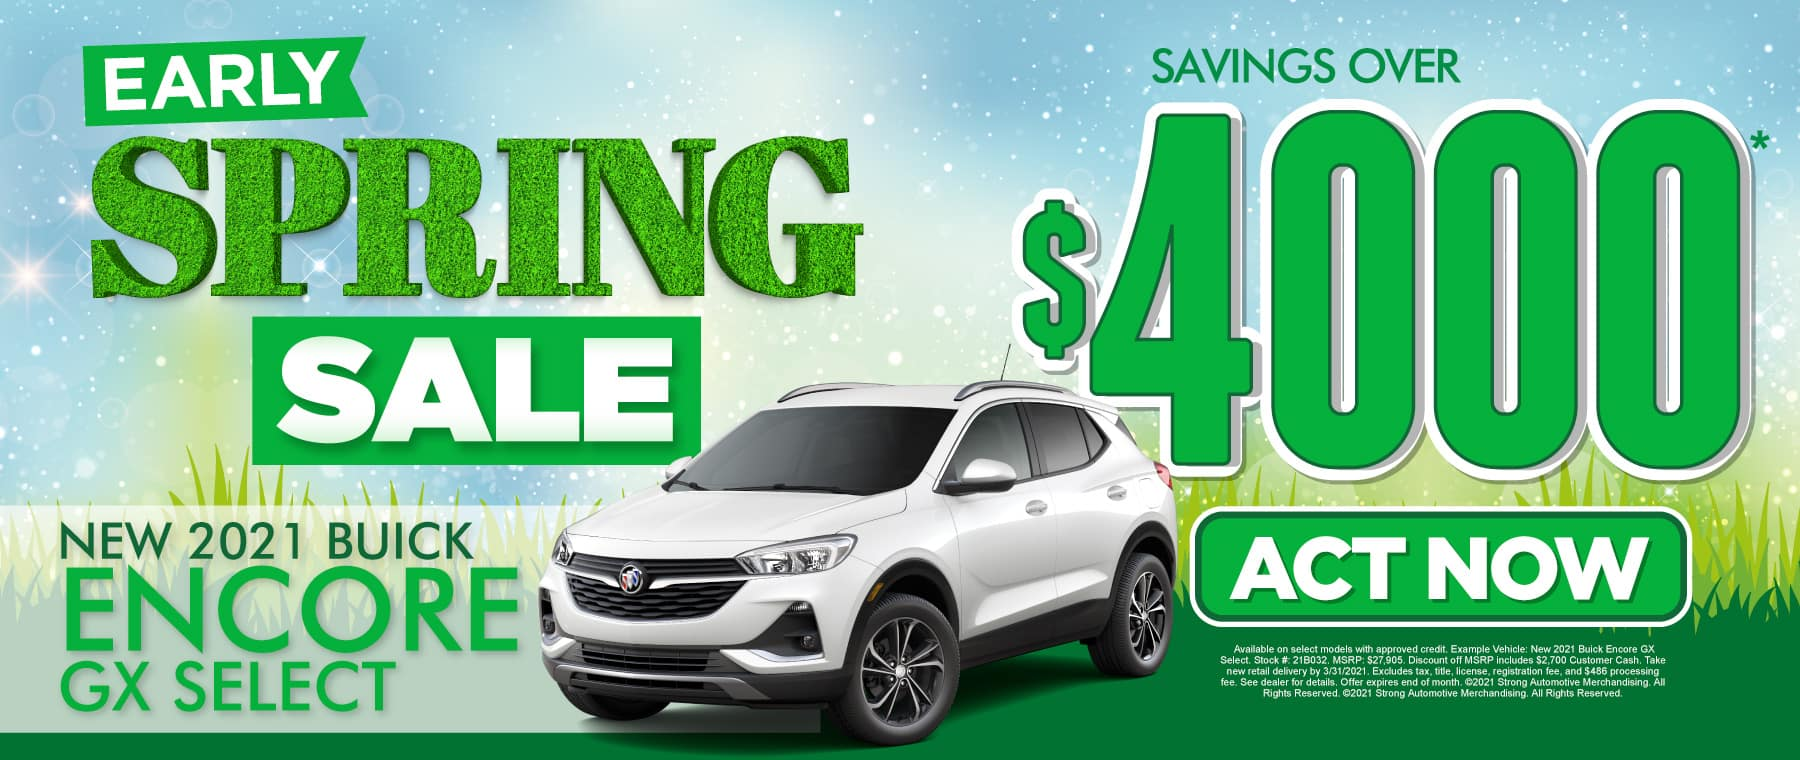 New 2021 Buick Encore - Savings of $4000 - Act Now